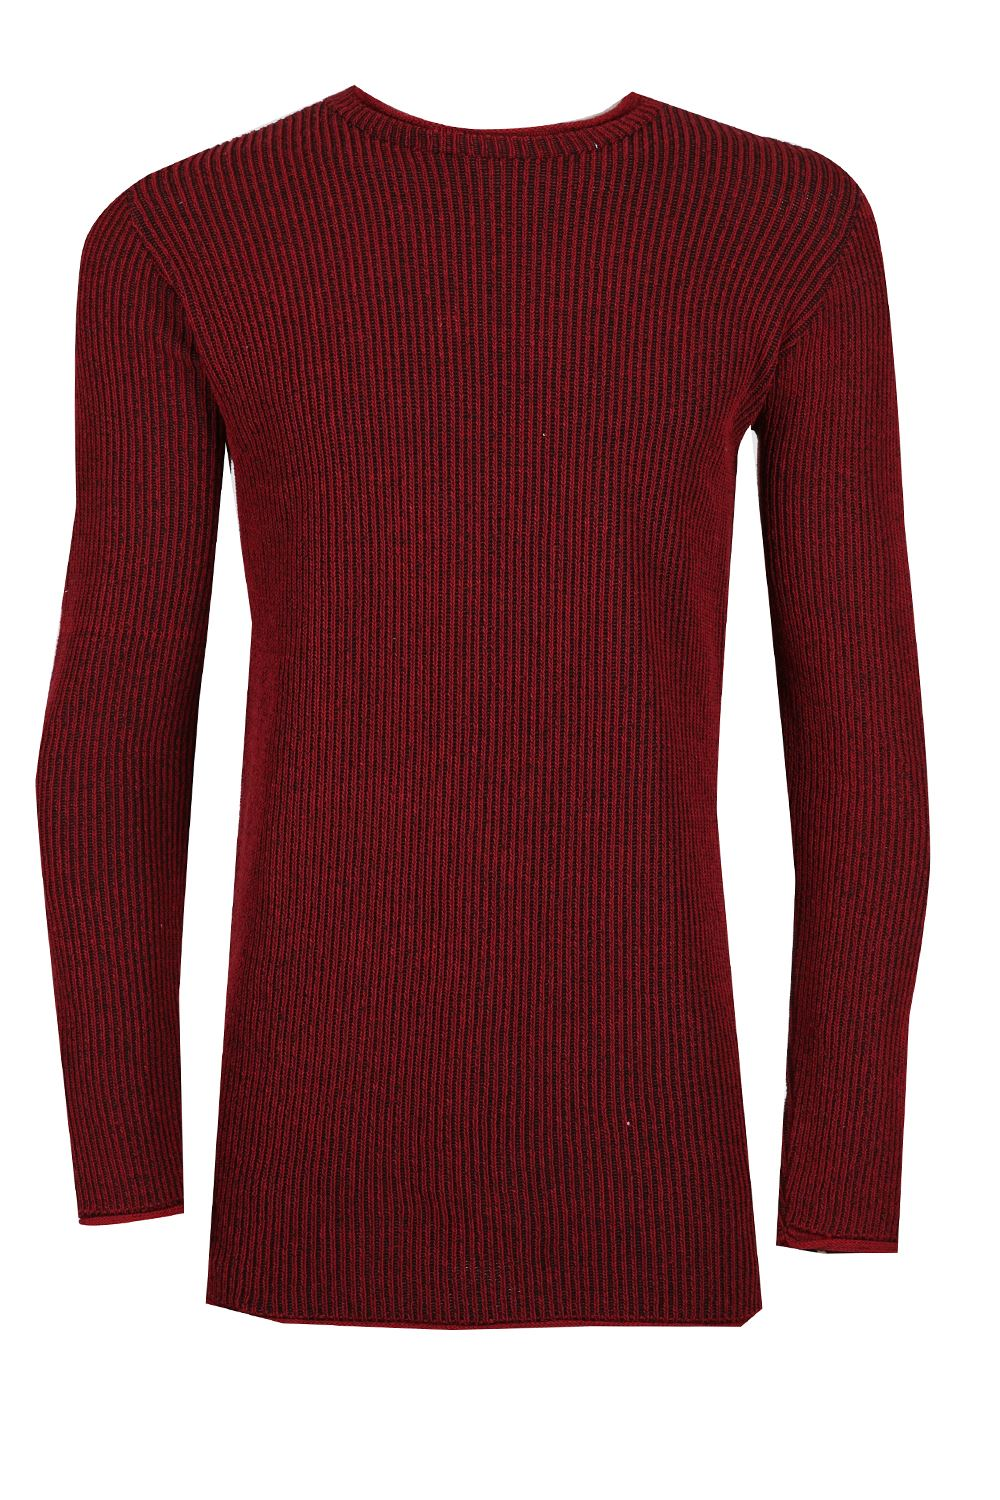 Mens Long Sleeve Crew Neck Sweater Knitted Block Side Stripe Pullover Jumper Top